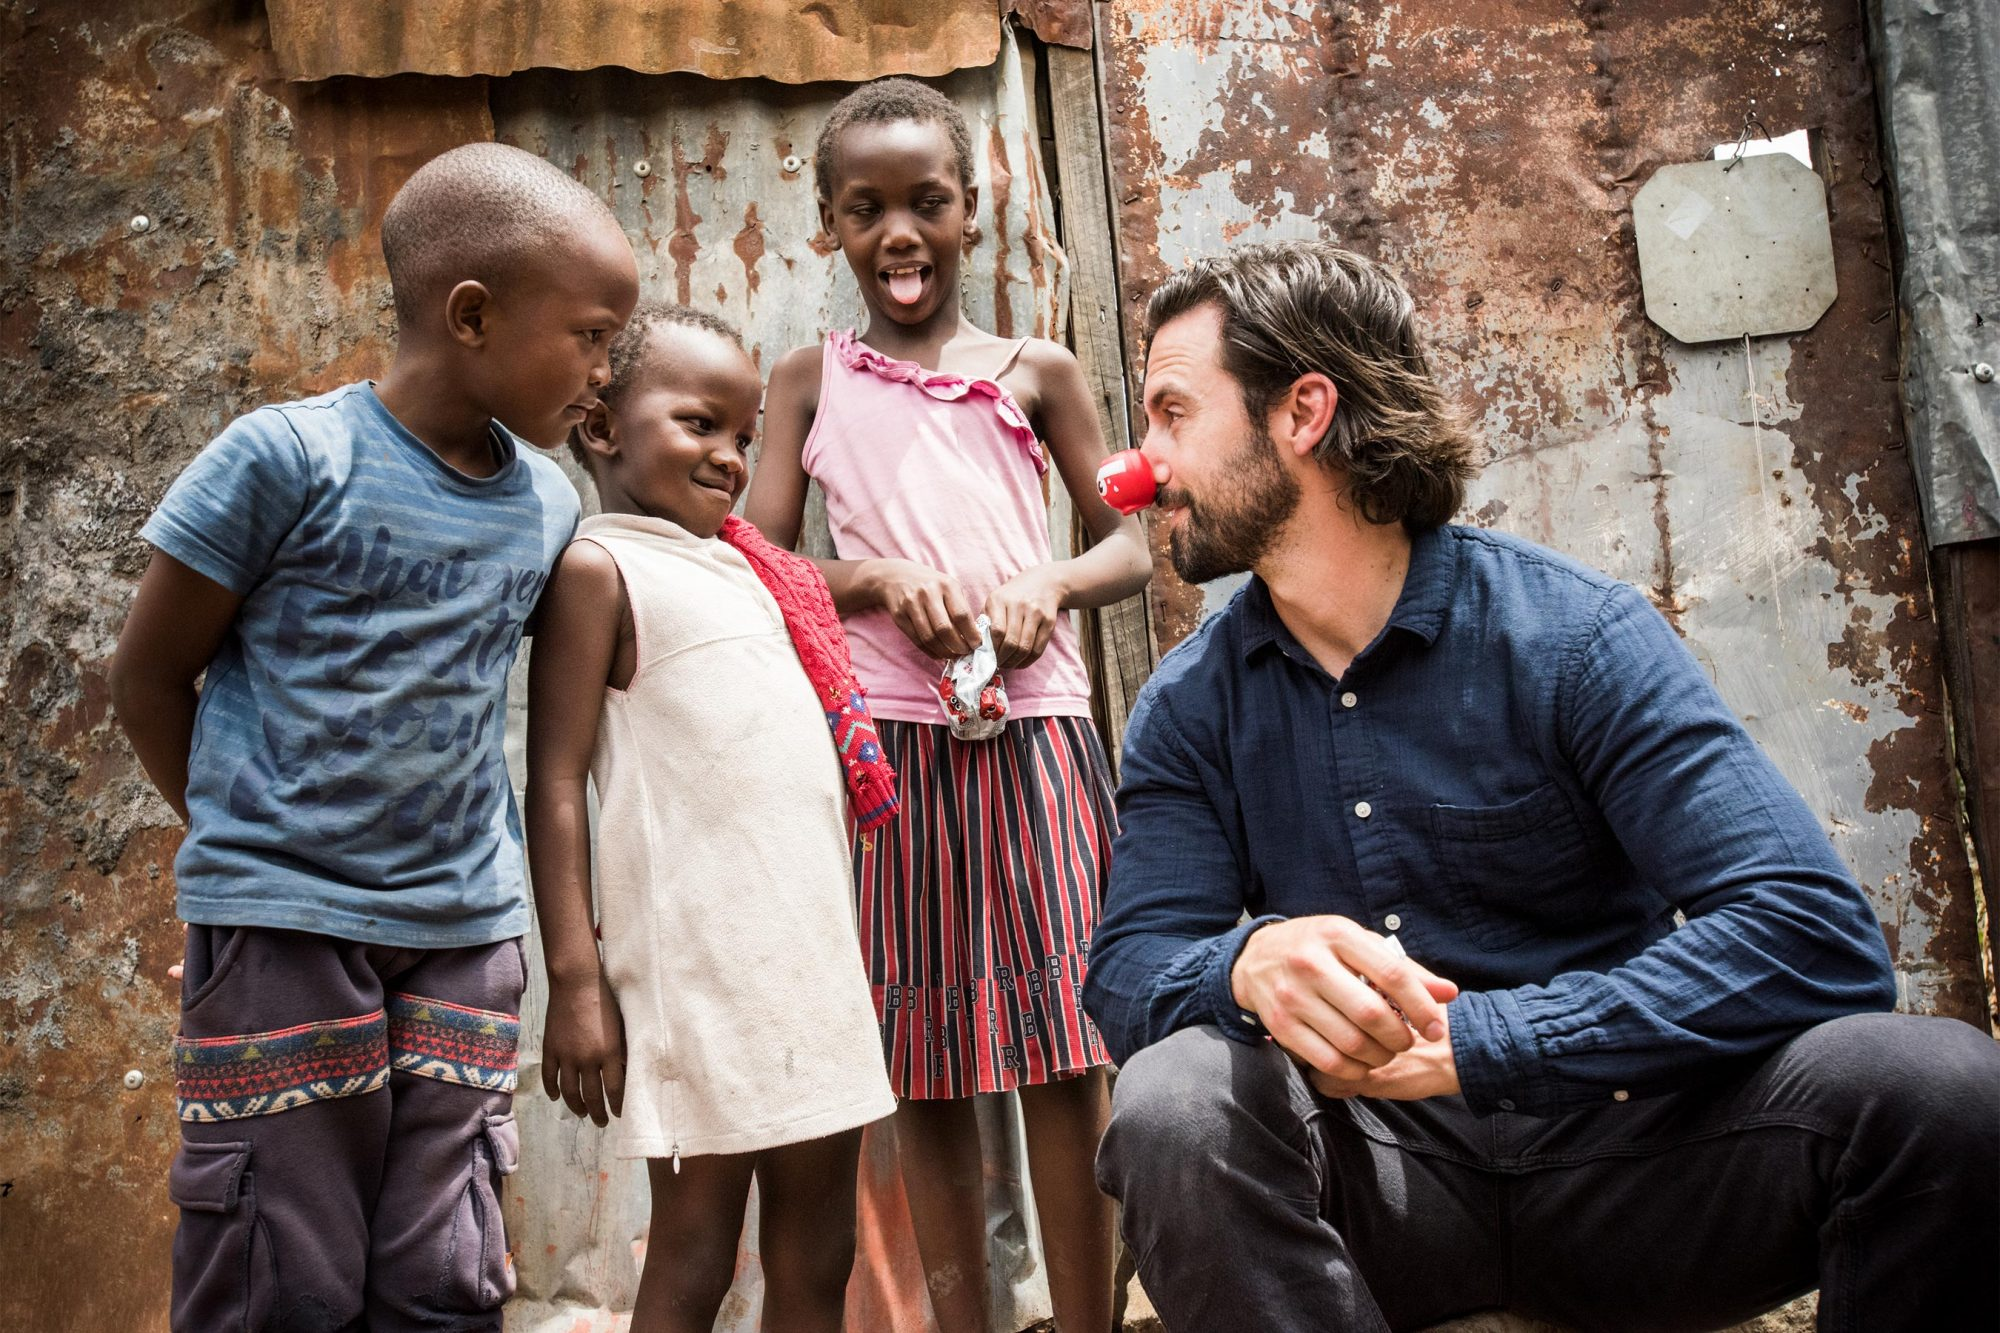 THE RED NOSE DAY SPECIAL -- Red Nose Day -- Pictured: Milo Ventimiglia in Kenya Visiting Red Nose Day-Funded Programs on April 24, 2019 -- (Photo by: Mia Collis/Comic Relief Inc.)